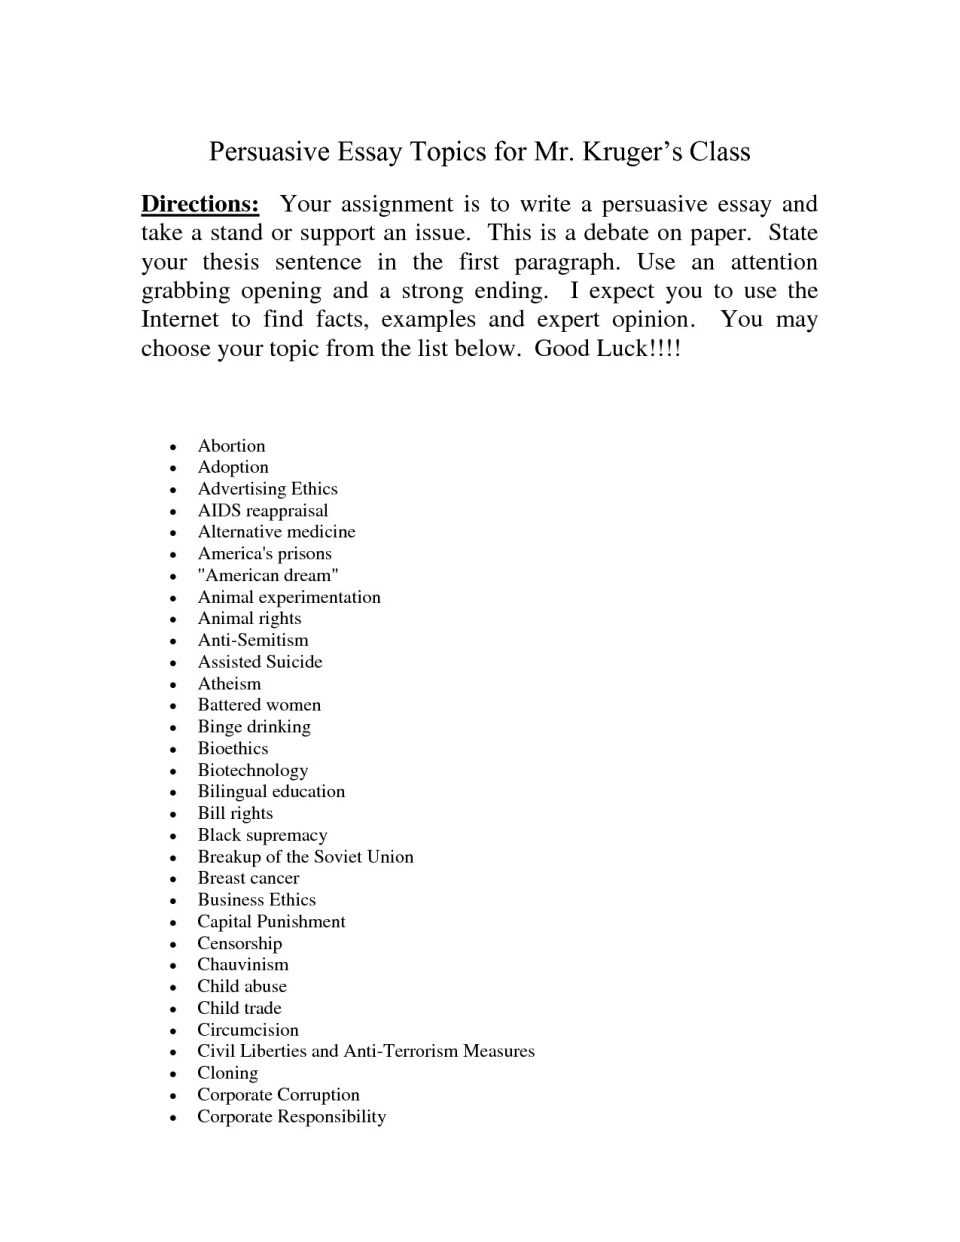 010 Topics Forlege Research Papers Topic Essay Barca Fontanacountryinn Within Good Persuasive Narrative To Write Abo Easy About Personal Descriptive Paper Informative Synthesis Stirring For College Controversial Debatable Full